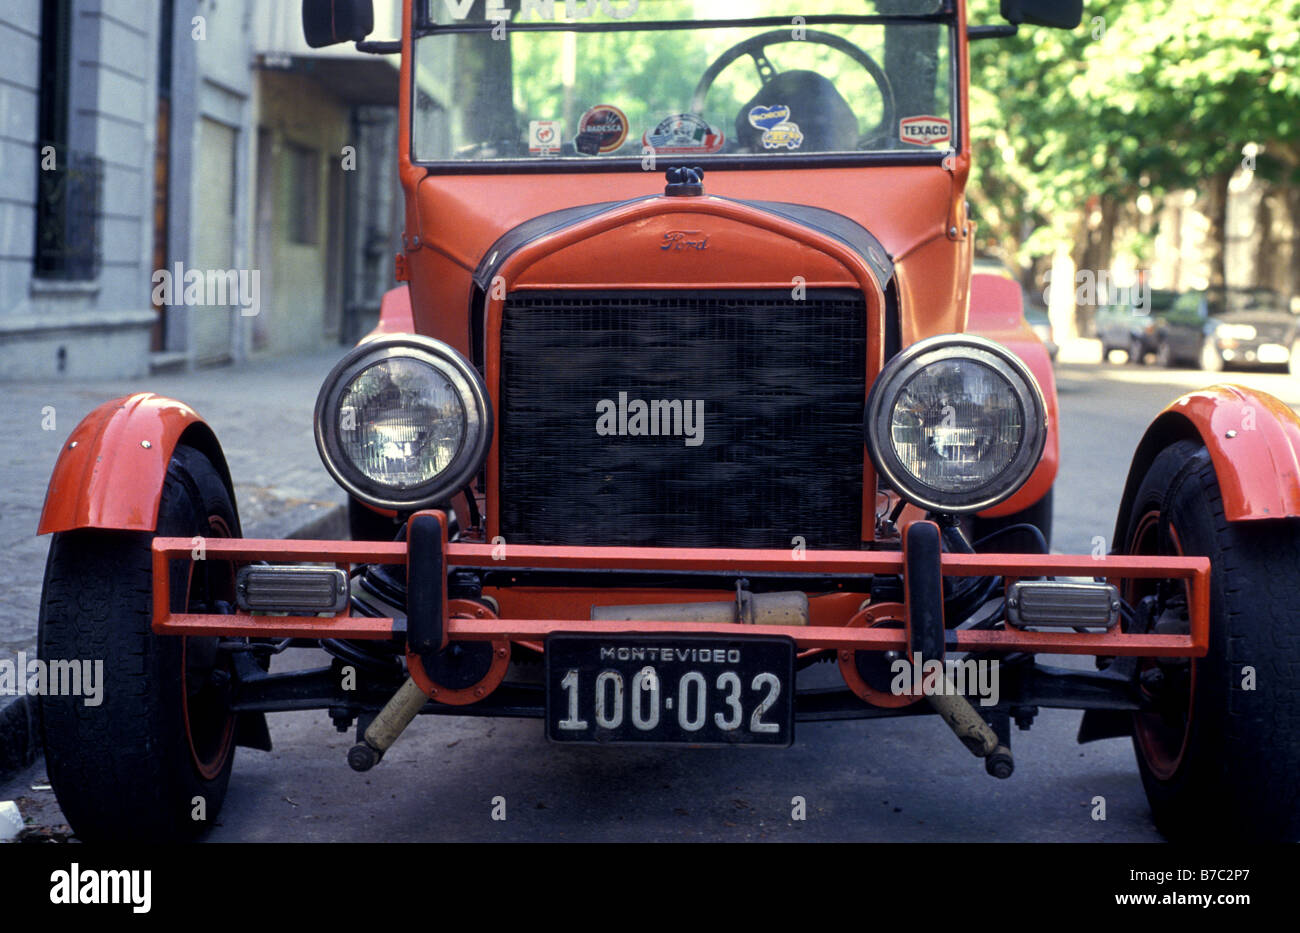 1e5767fc model t ford hot rod montevideo uruguay Stock Photo: 21778575 - Alamy